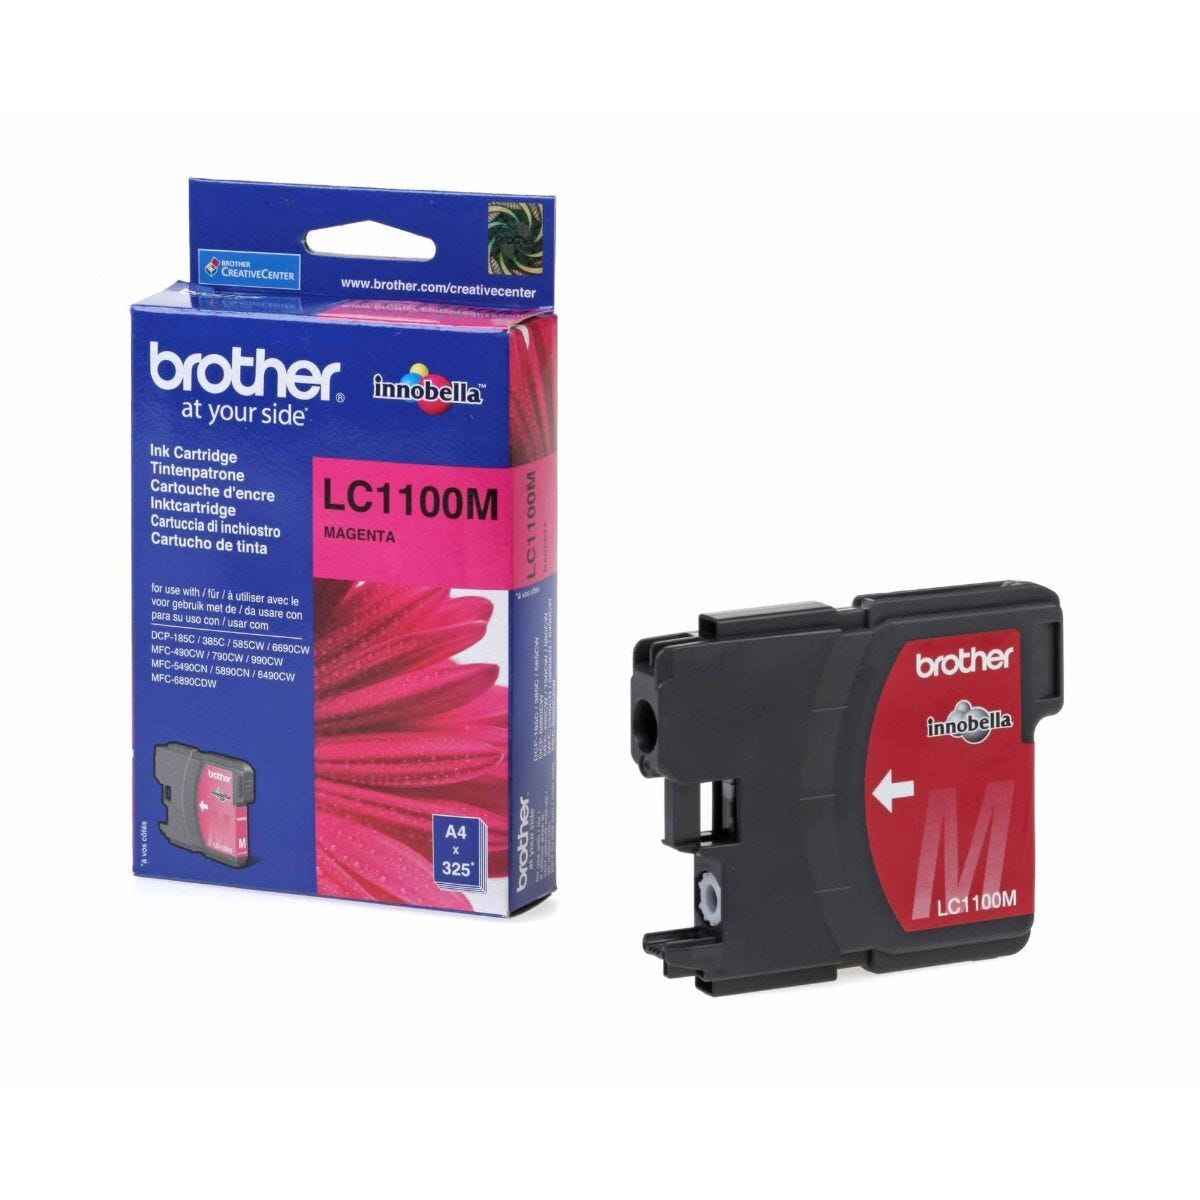 Brother LC1100M Ink Cartridge